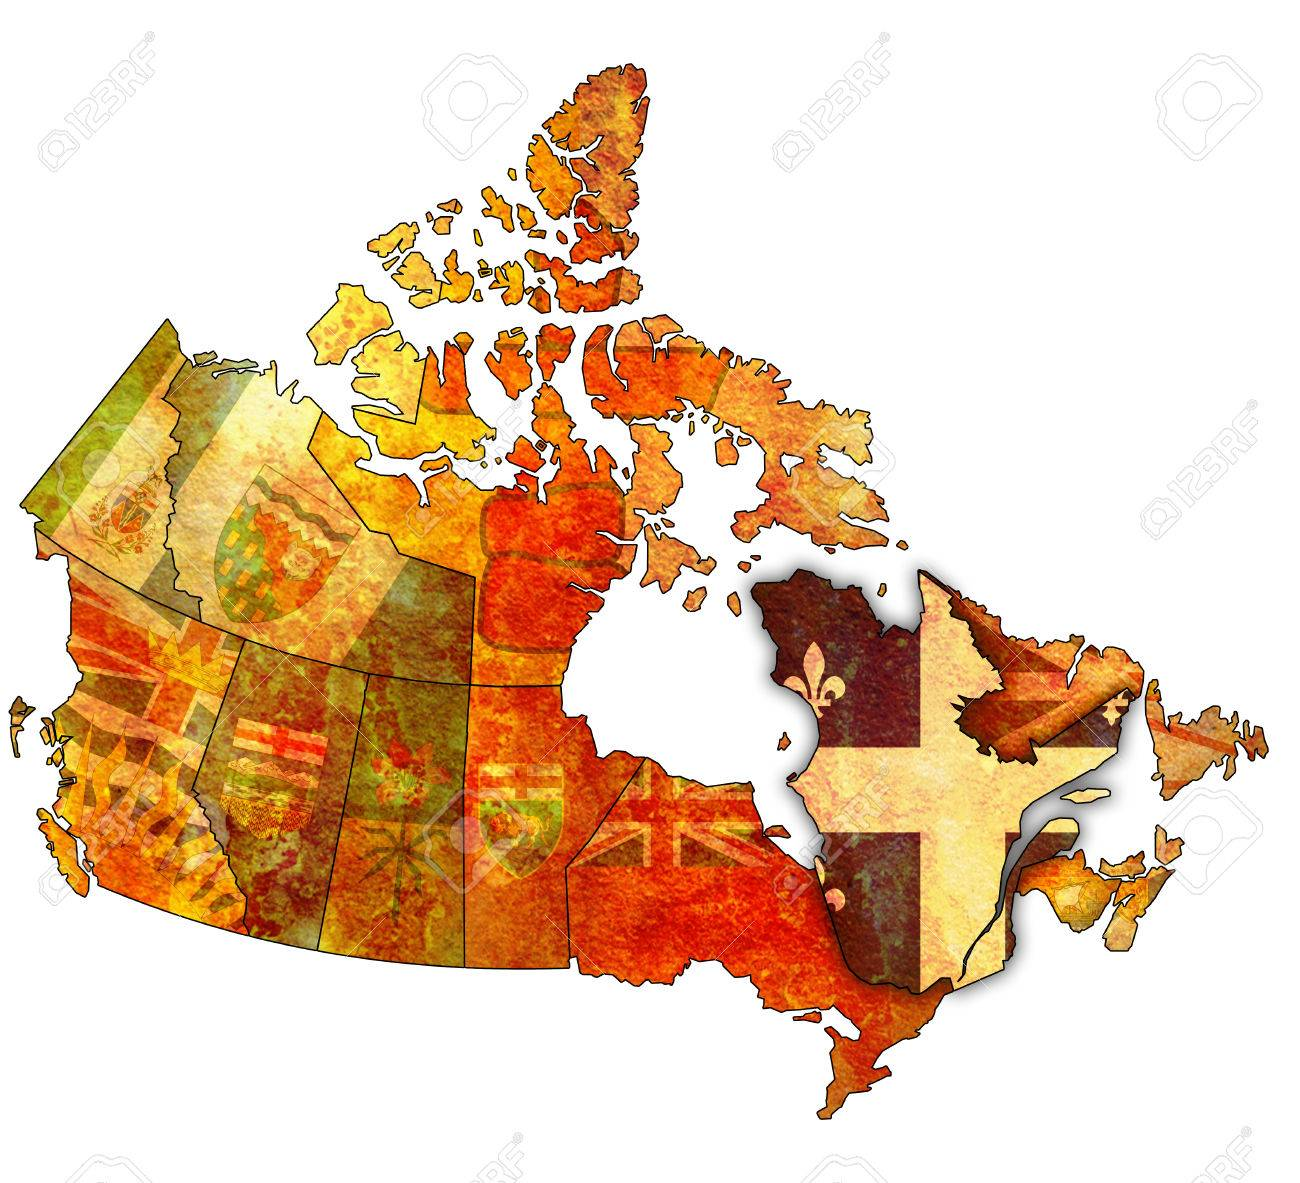 quebec on administration map of canada with flags stock photo